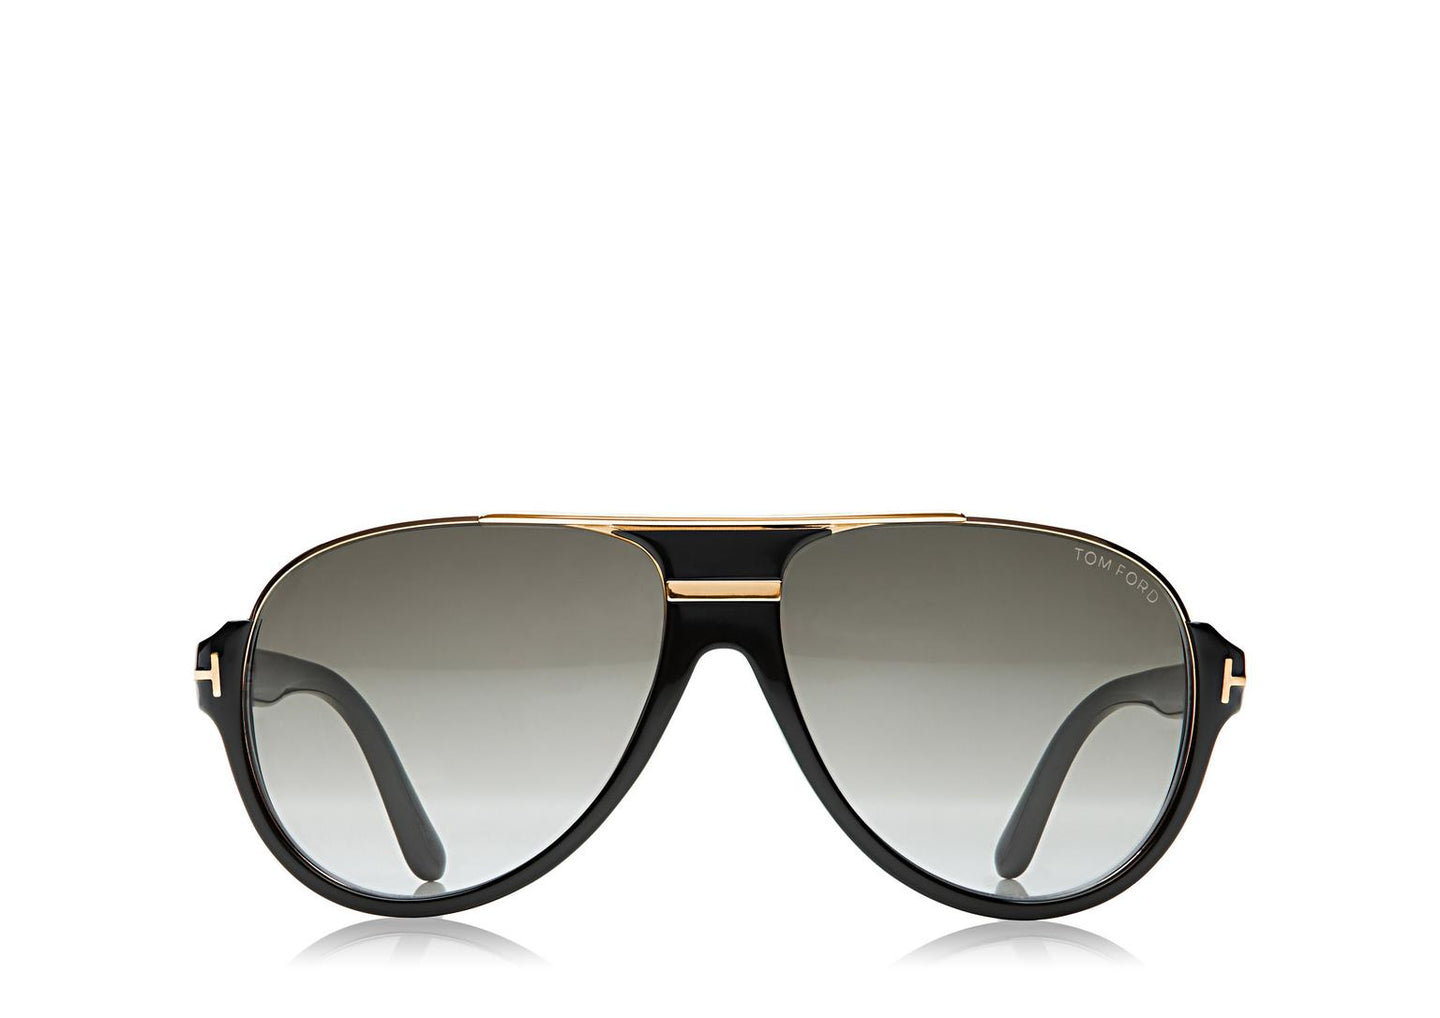 shades-of-charleston - Dimitry - Tom Ford - Sunglasses